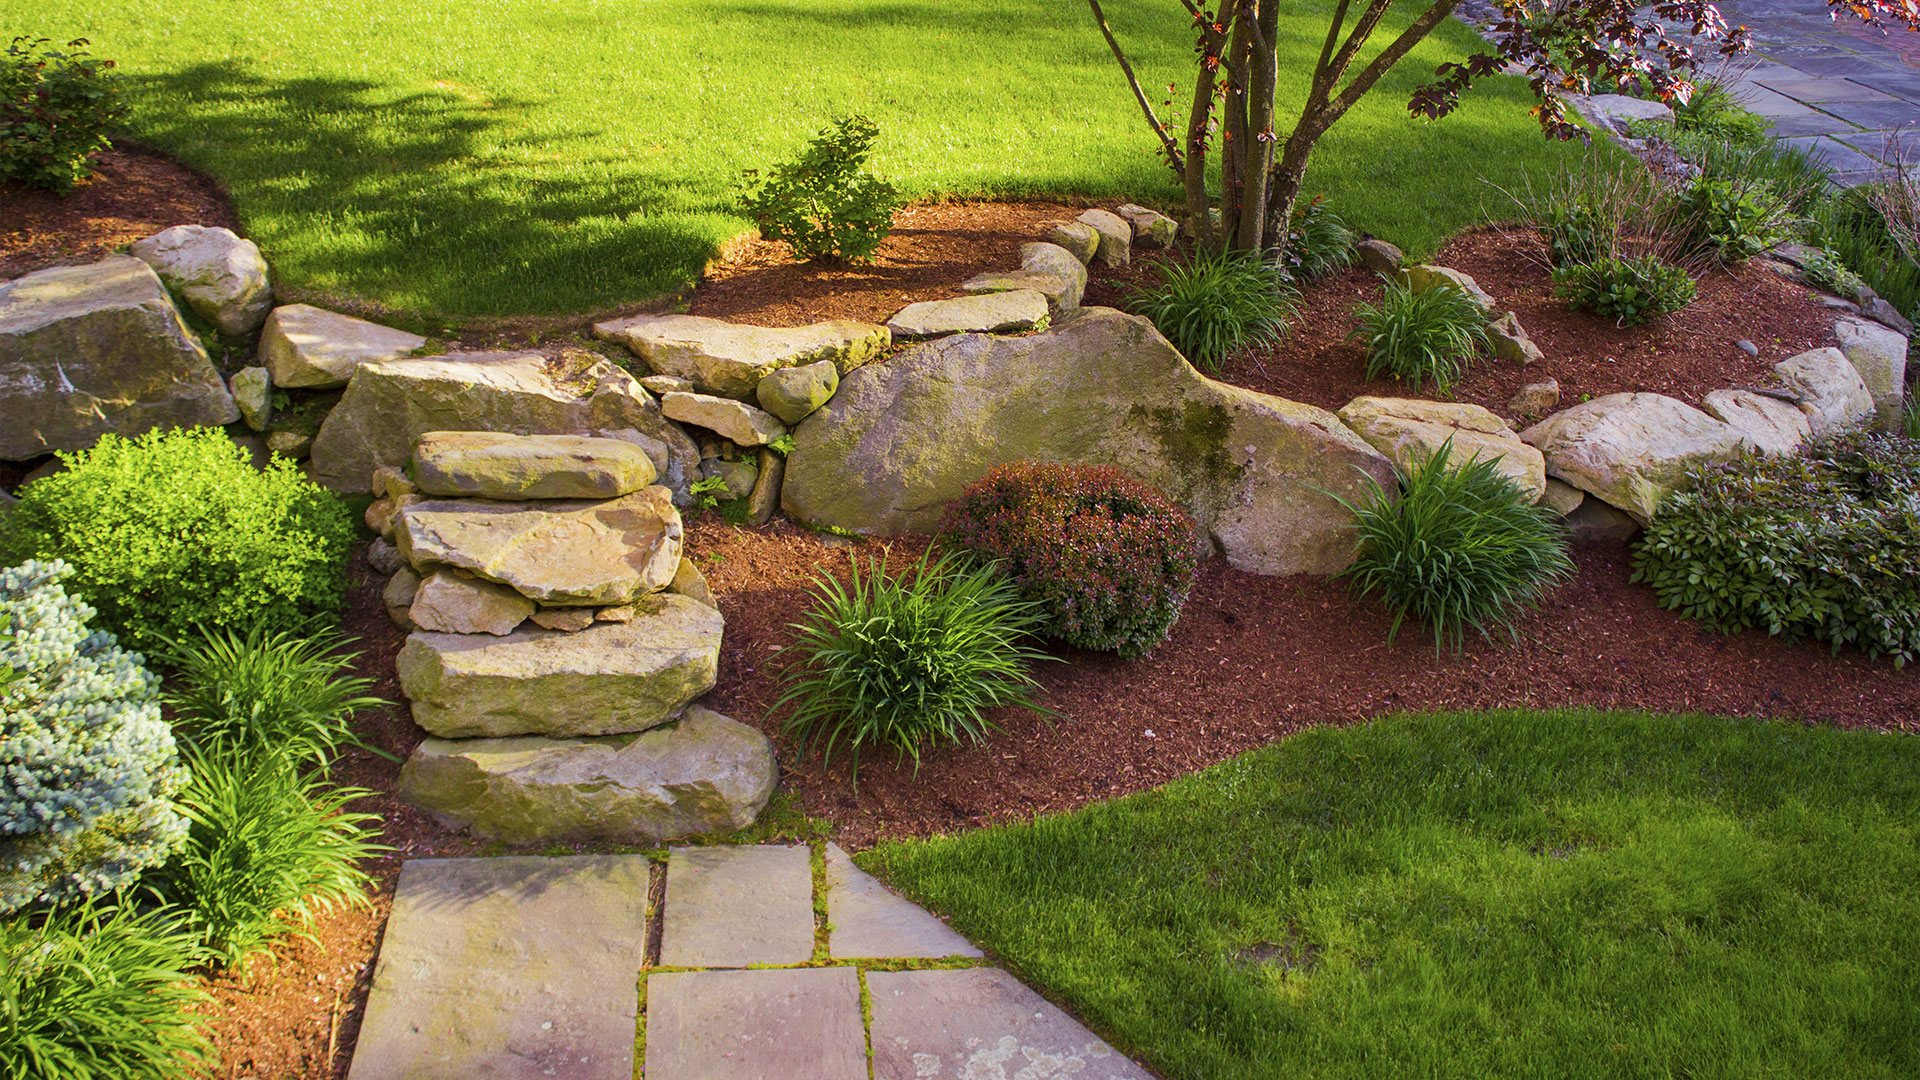 Home glen allen landscaping weed control and lawn care for Garden design and landscaping